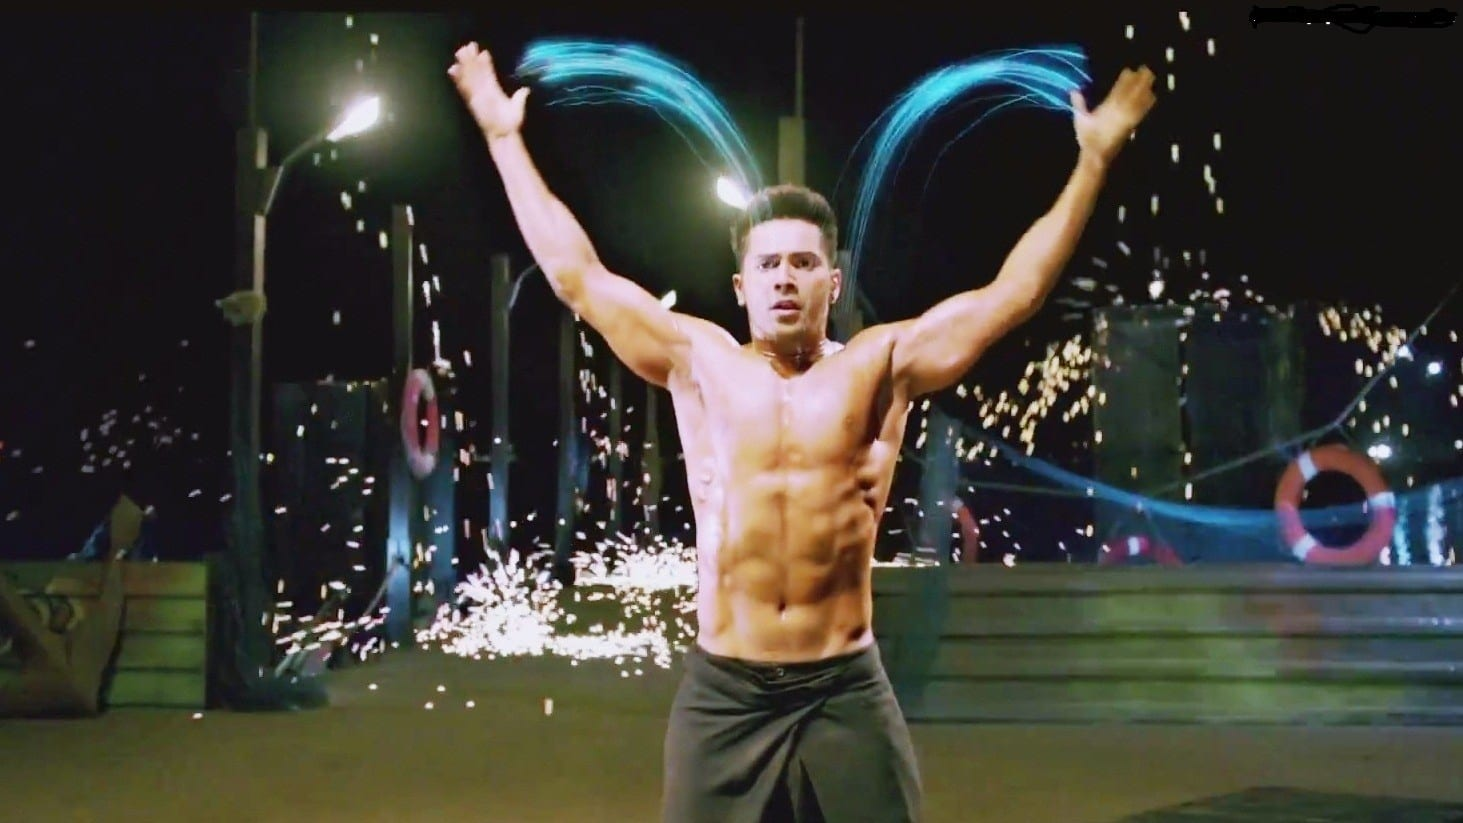 ABCD 1st Monday Collection: Crosses 50 Crores